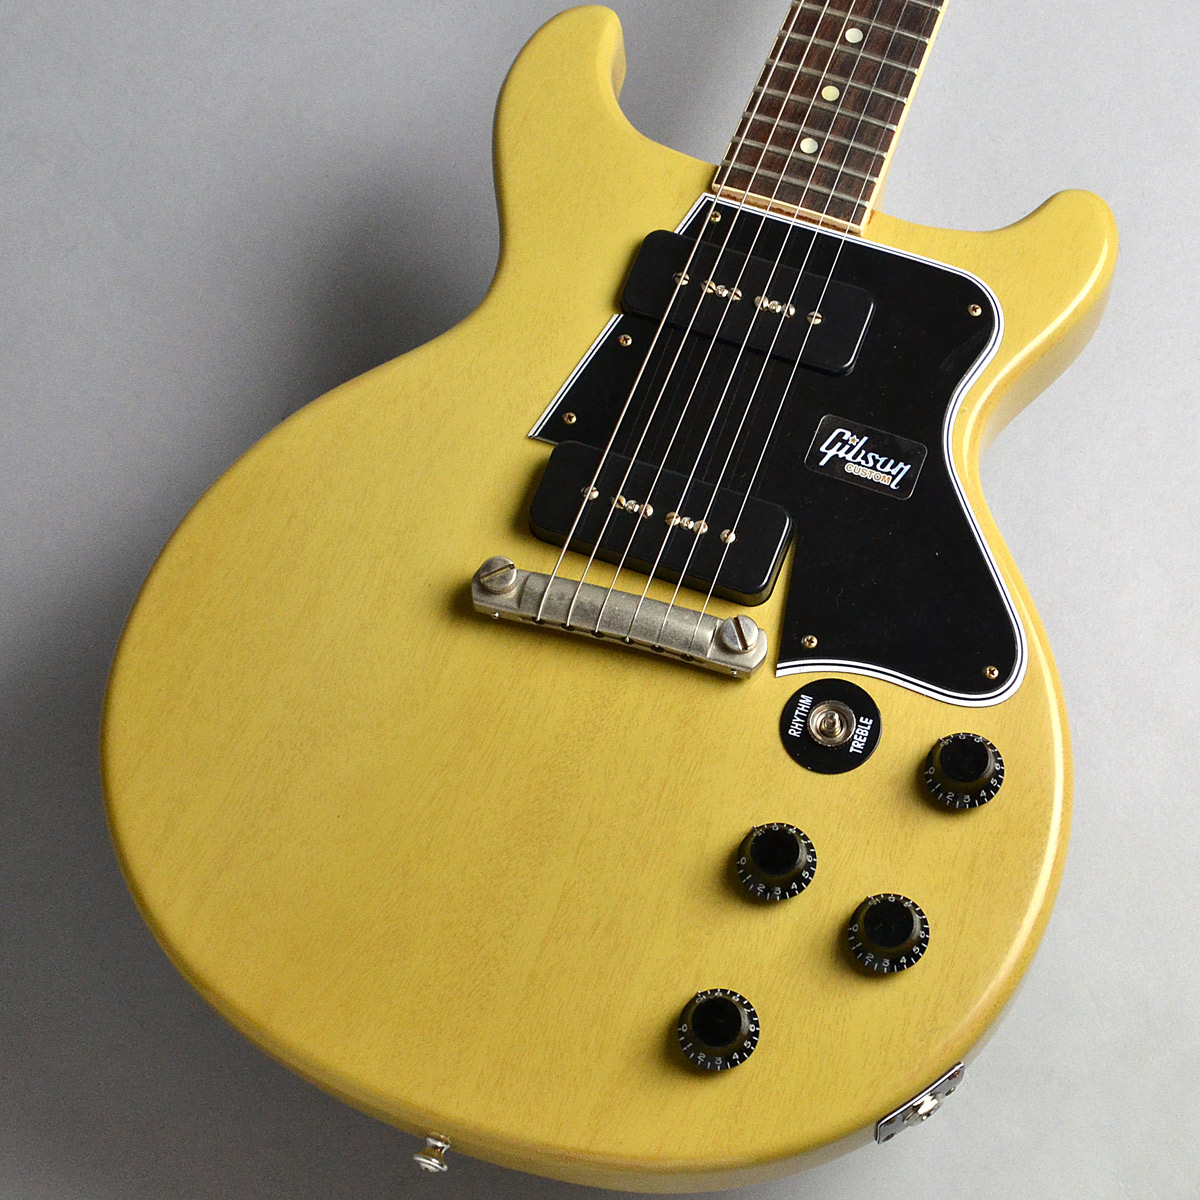 1960 Les Paul Special Double Cutaway VOSのボディトップ-アップ画像